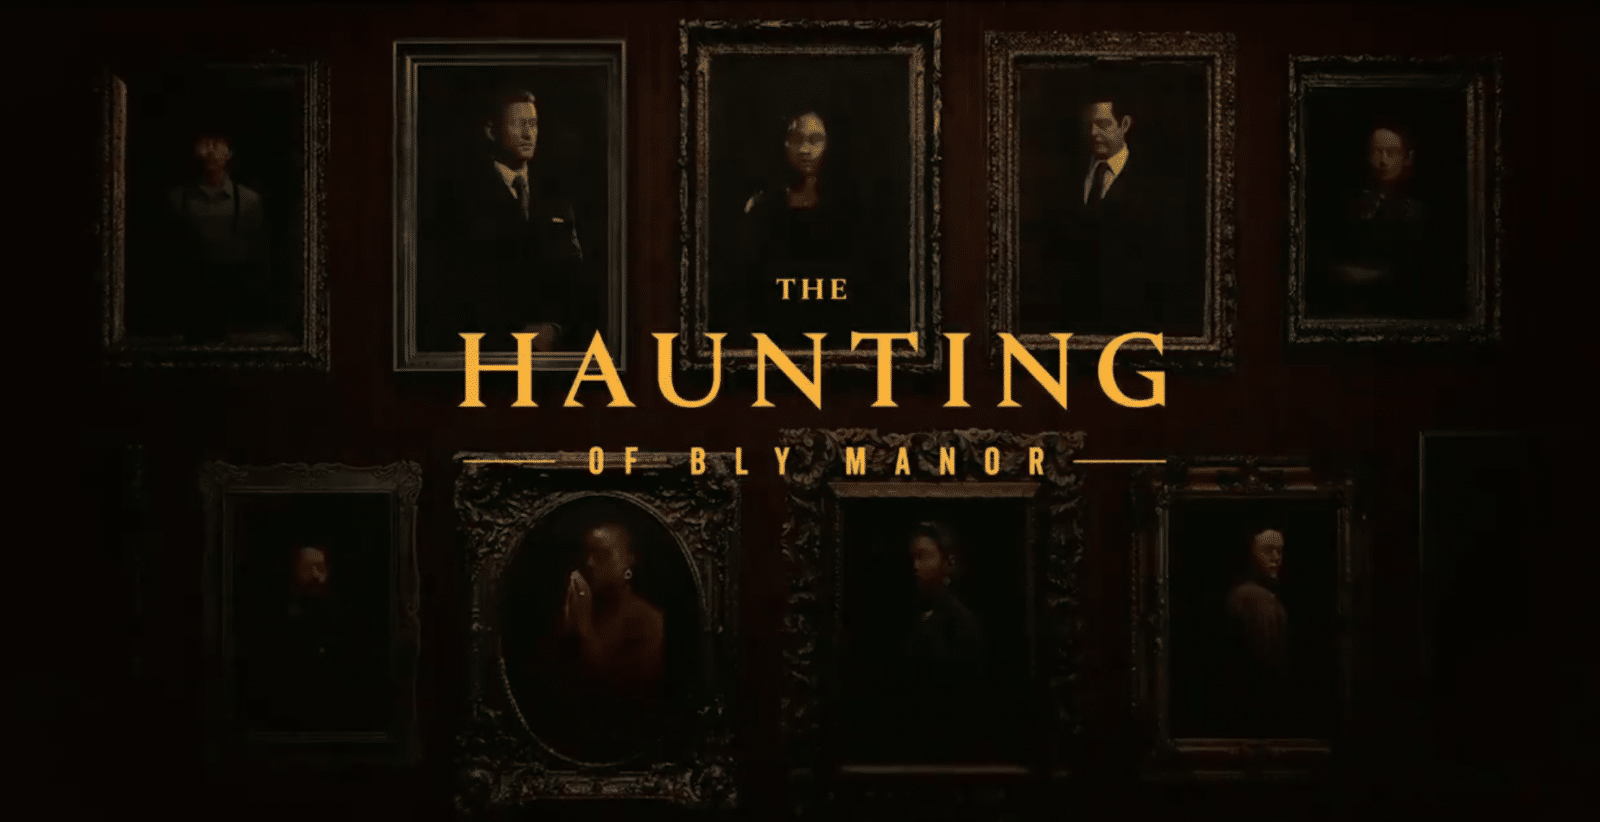 Haunting of Bly Manor - How Many Episodes